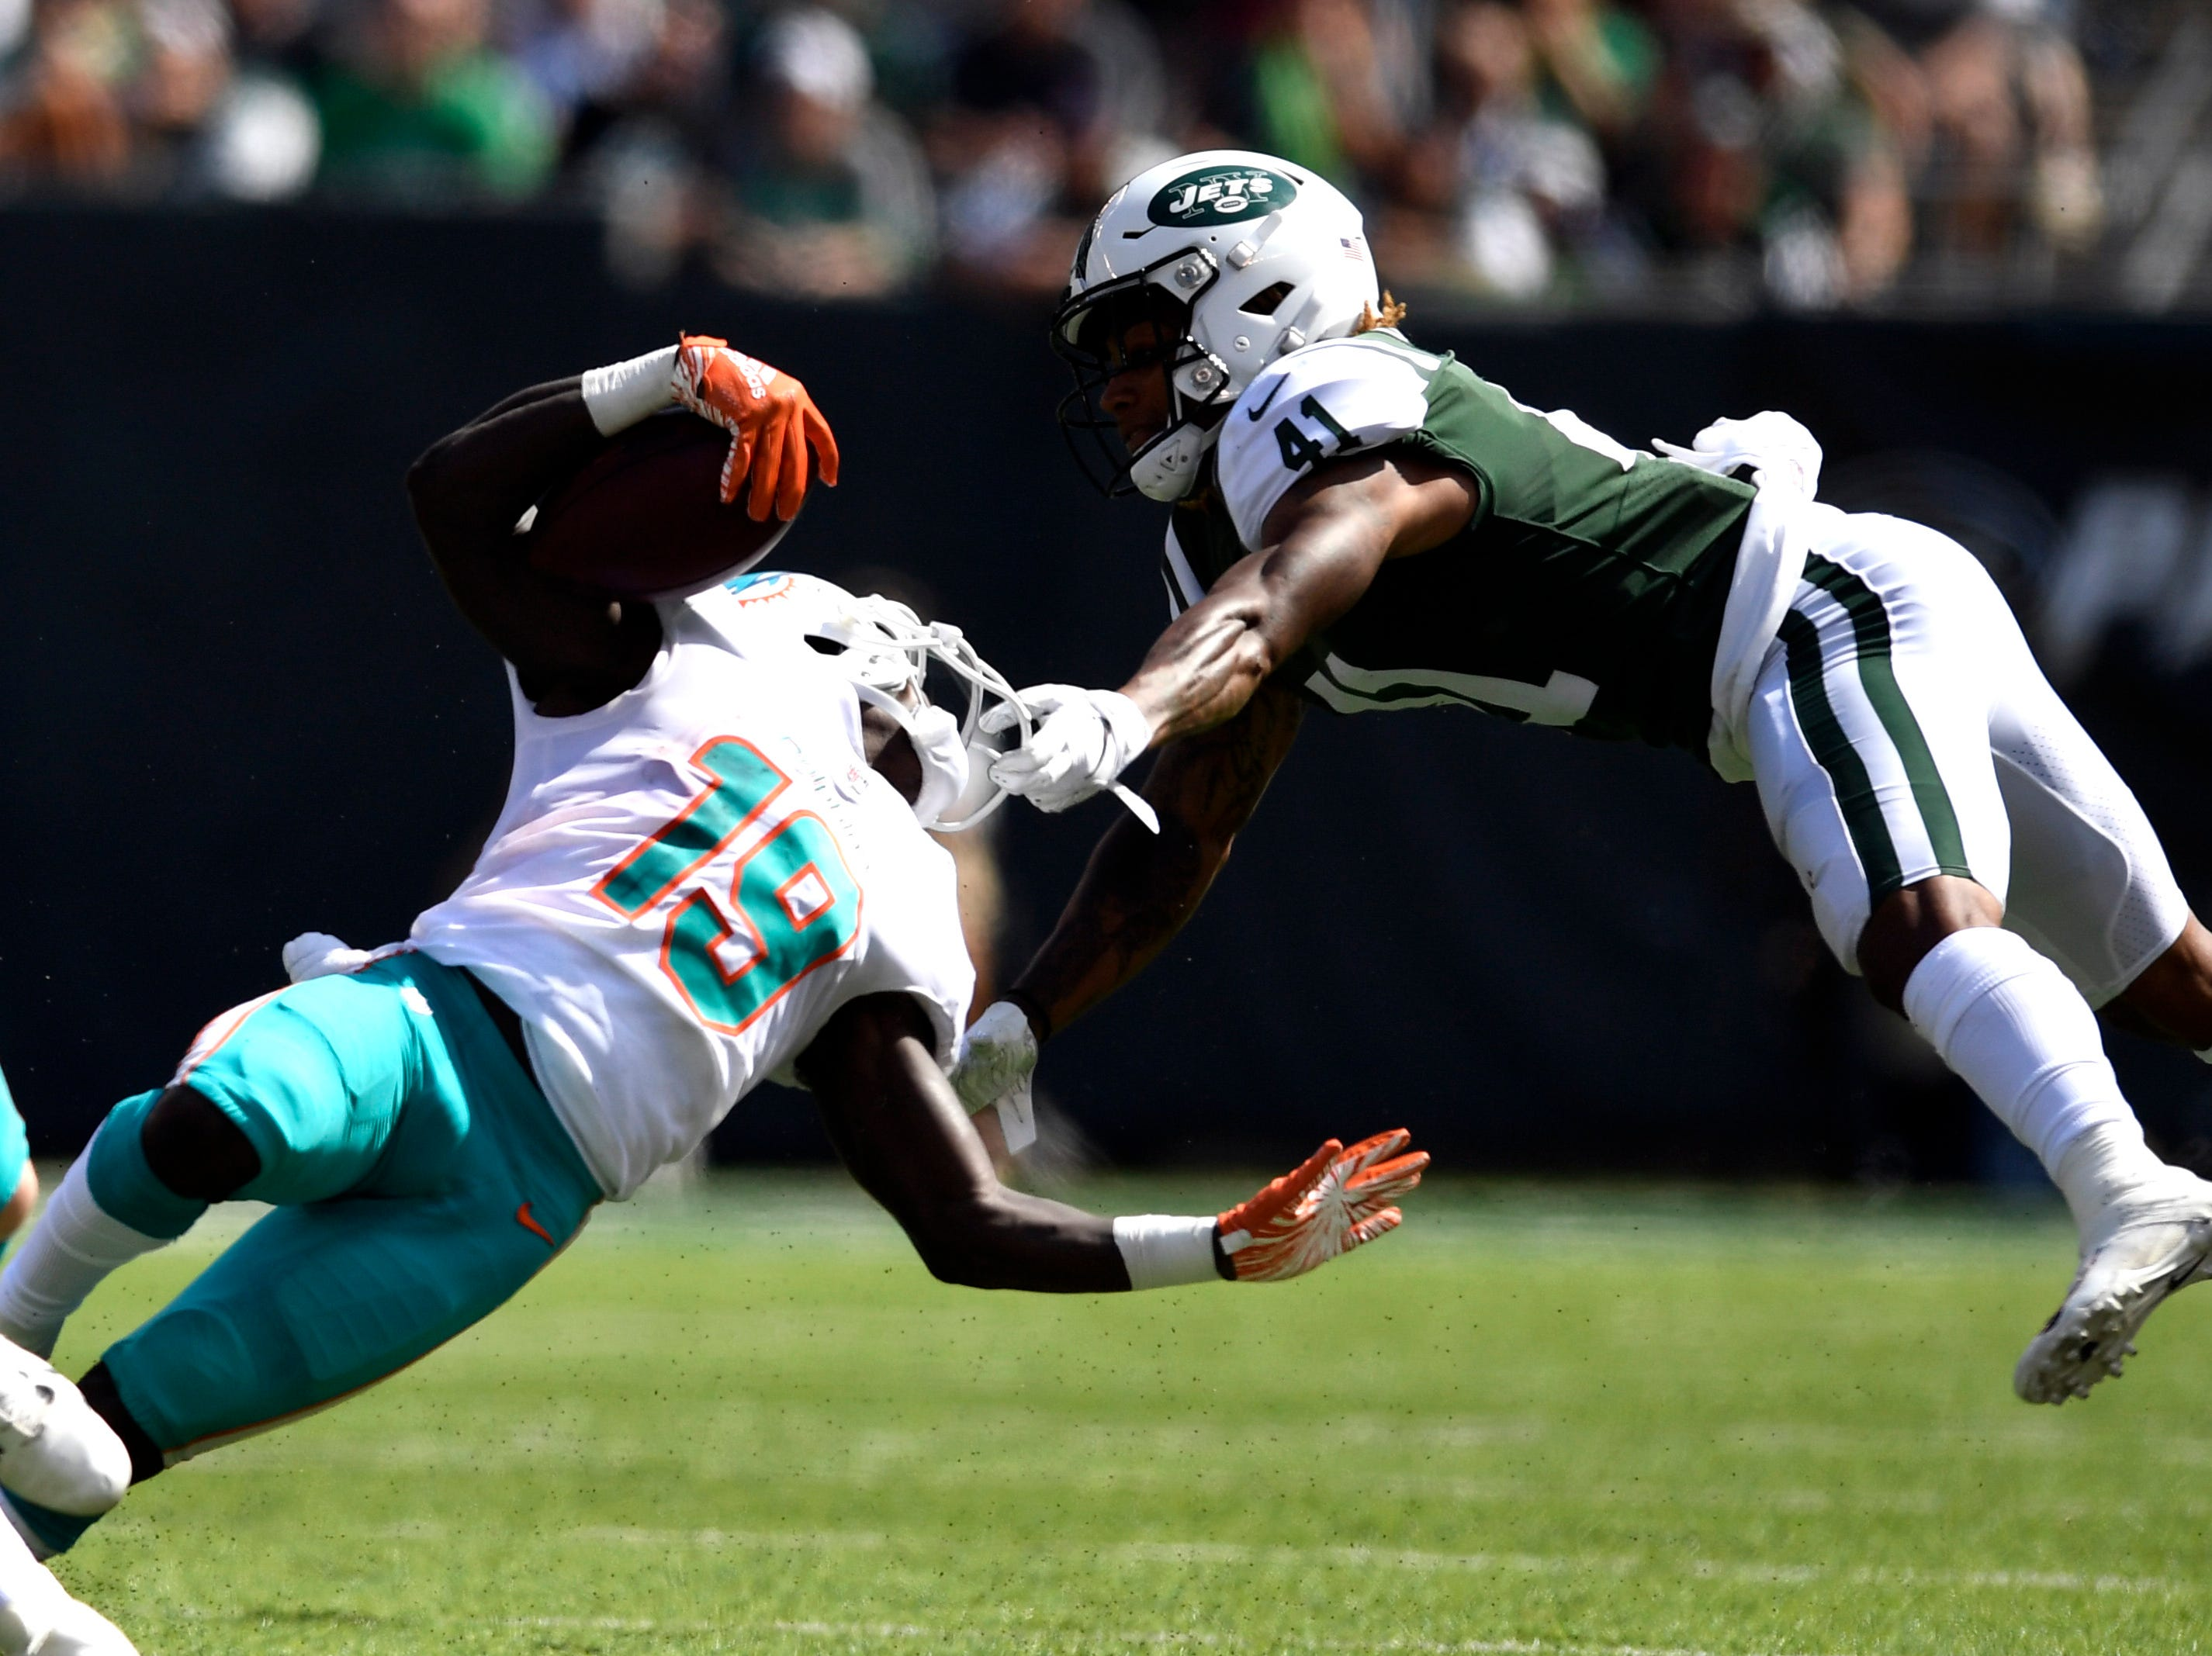 New York Jets cornerback Buster Skrine (41) grabs ahold of Miami Dolphins wide receiver Jakeem Grant's (19) face mask in Week 2 at MetLife Stadium in East Rutherford, NJ on Sunday, September 16, 2018.